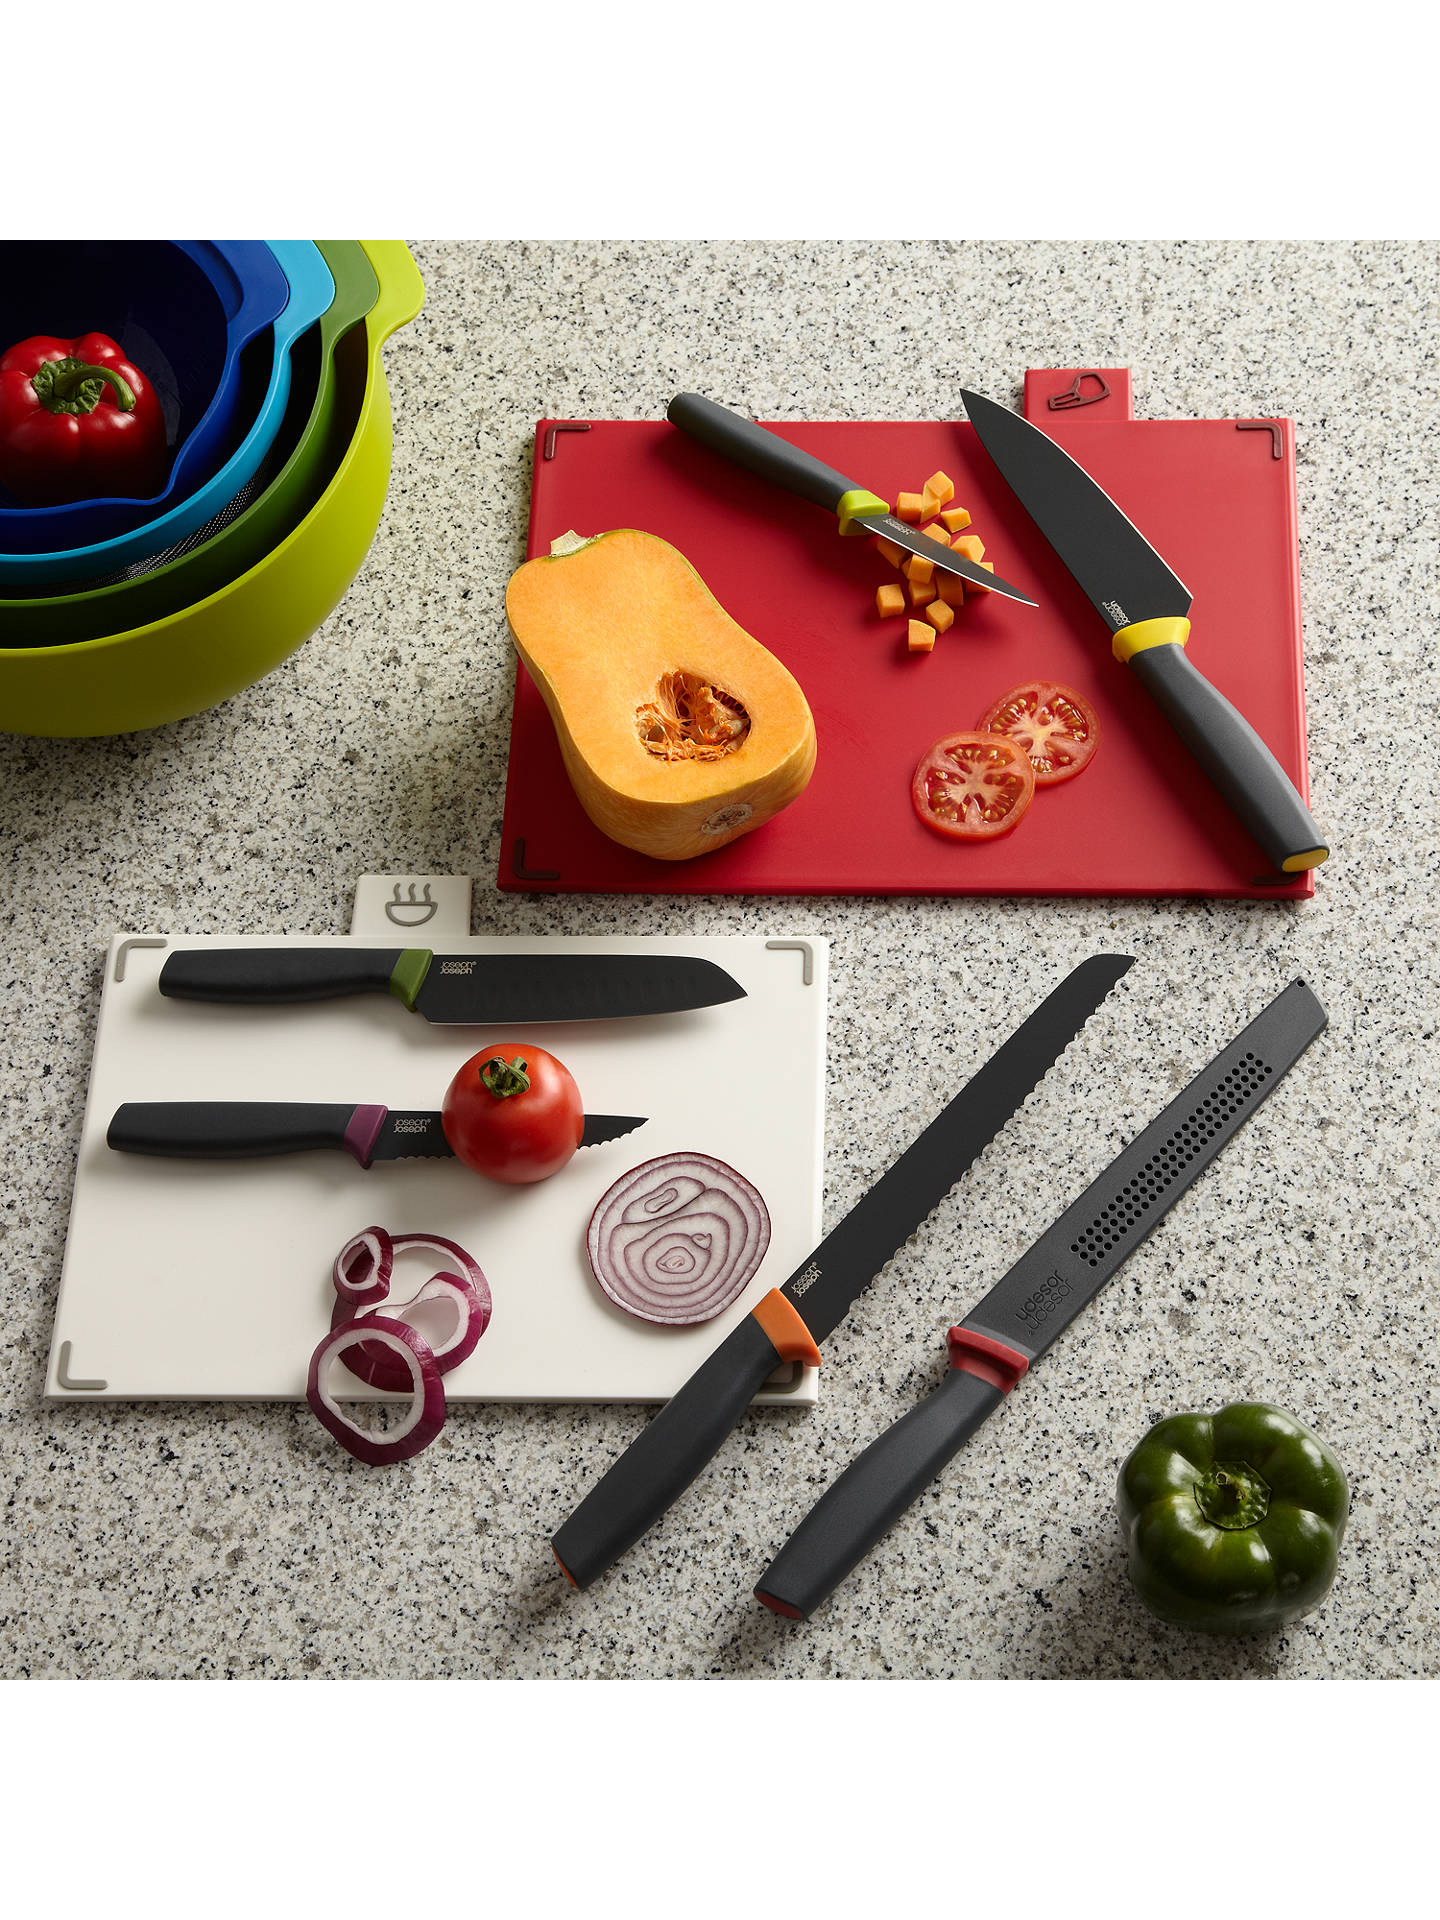 Buy Joseph Joseph Elevate Chef's Knife, 16.5cm Online at johnlewis.com